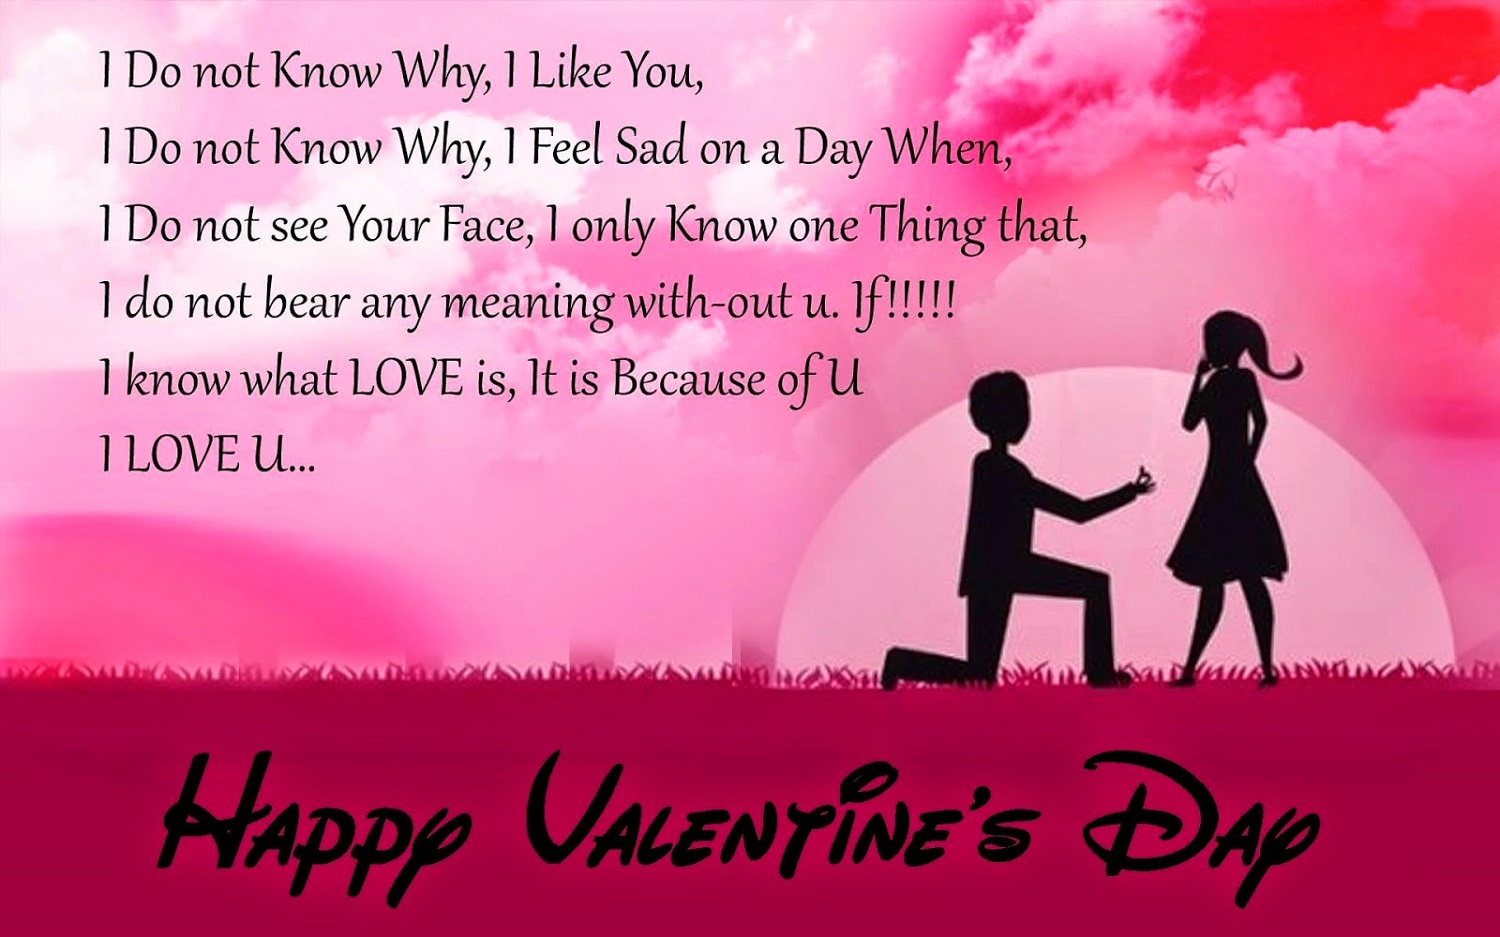 happy valentines day 2018 wishes - Cute Valentines Day Sayings For Friends